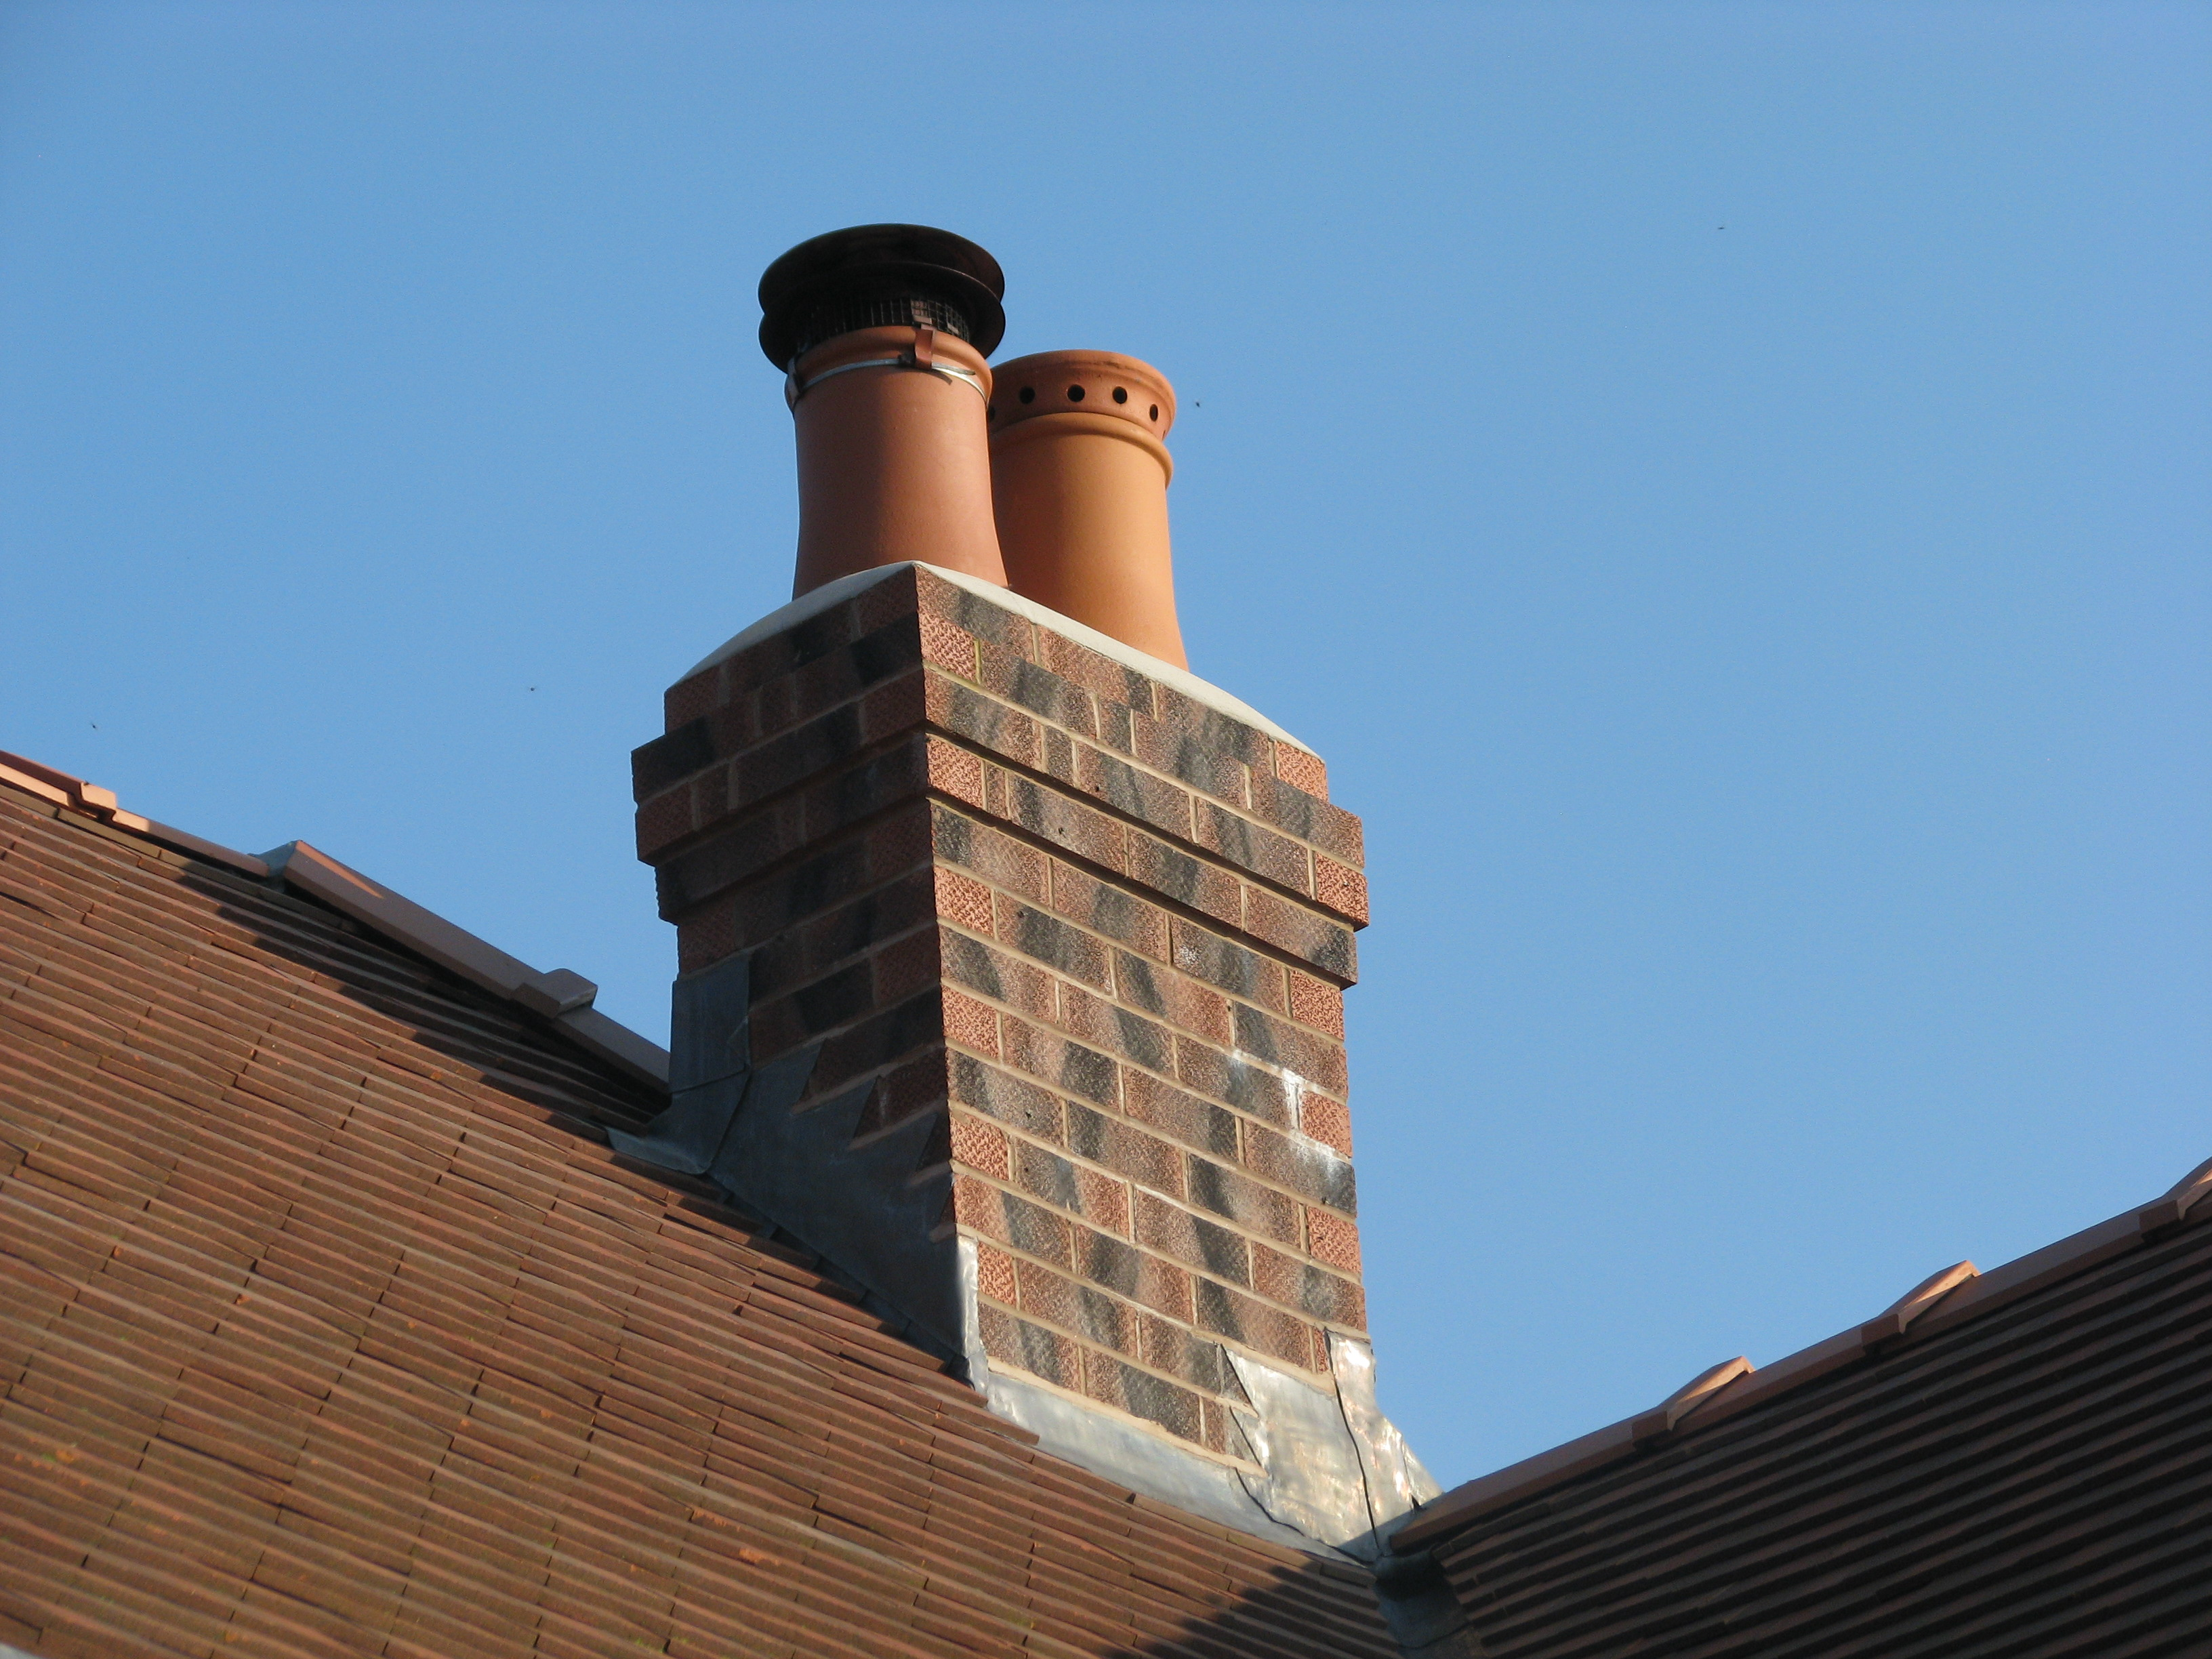 Roofing Services Re Roofing Lead Work G Timlin Roofing